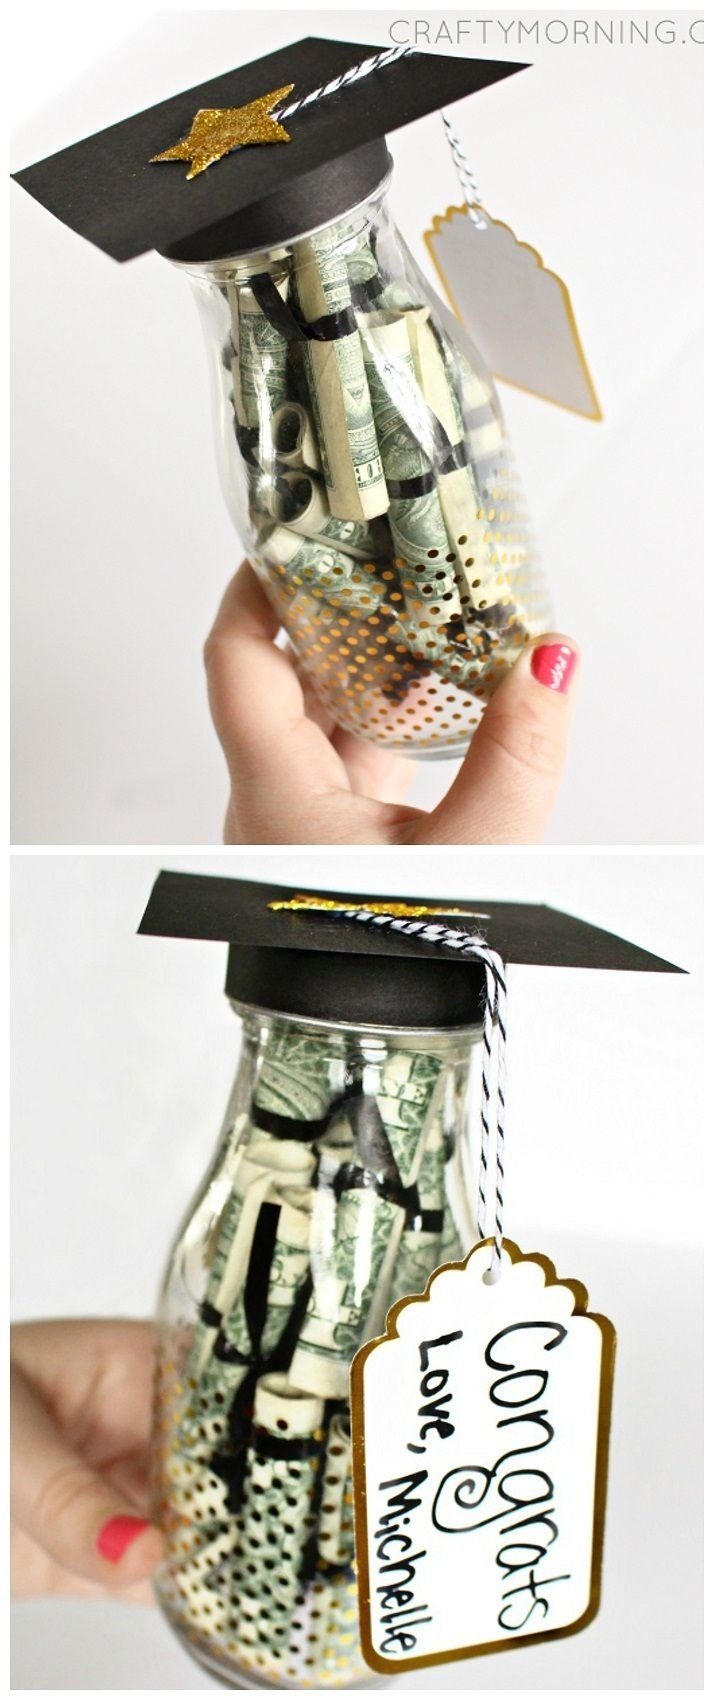 10 Attractive Graduation Gifts Ideas For Her graduation glass bottle gift dollar bill diplomas perfect for 12 2020